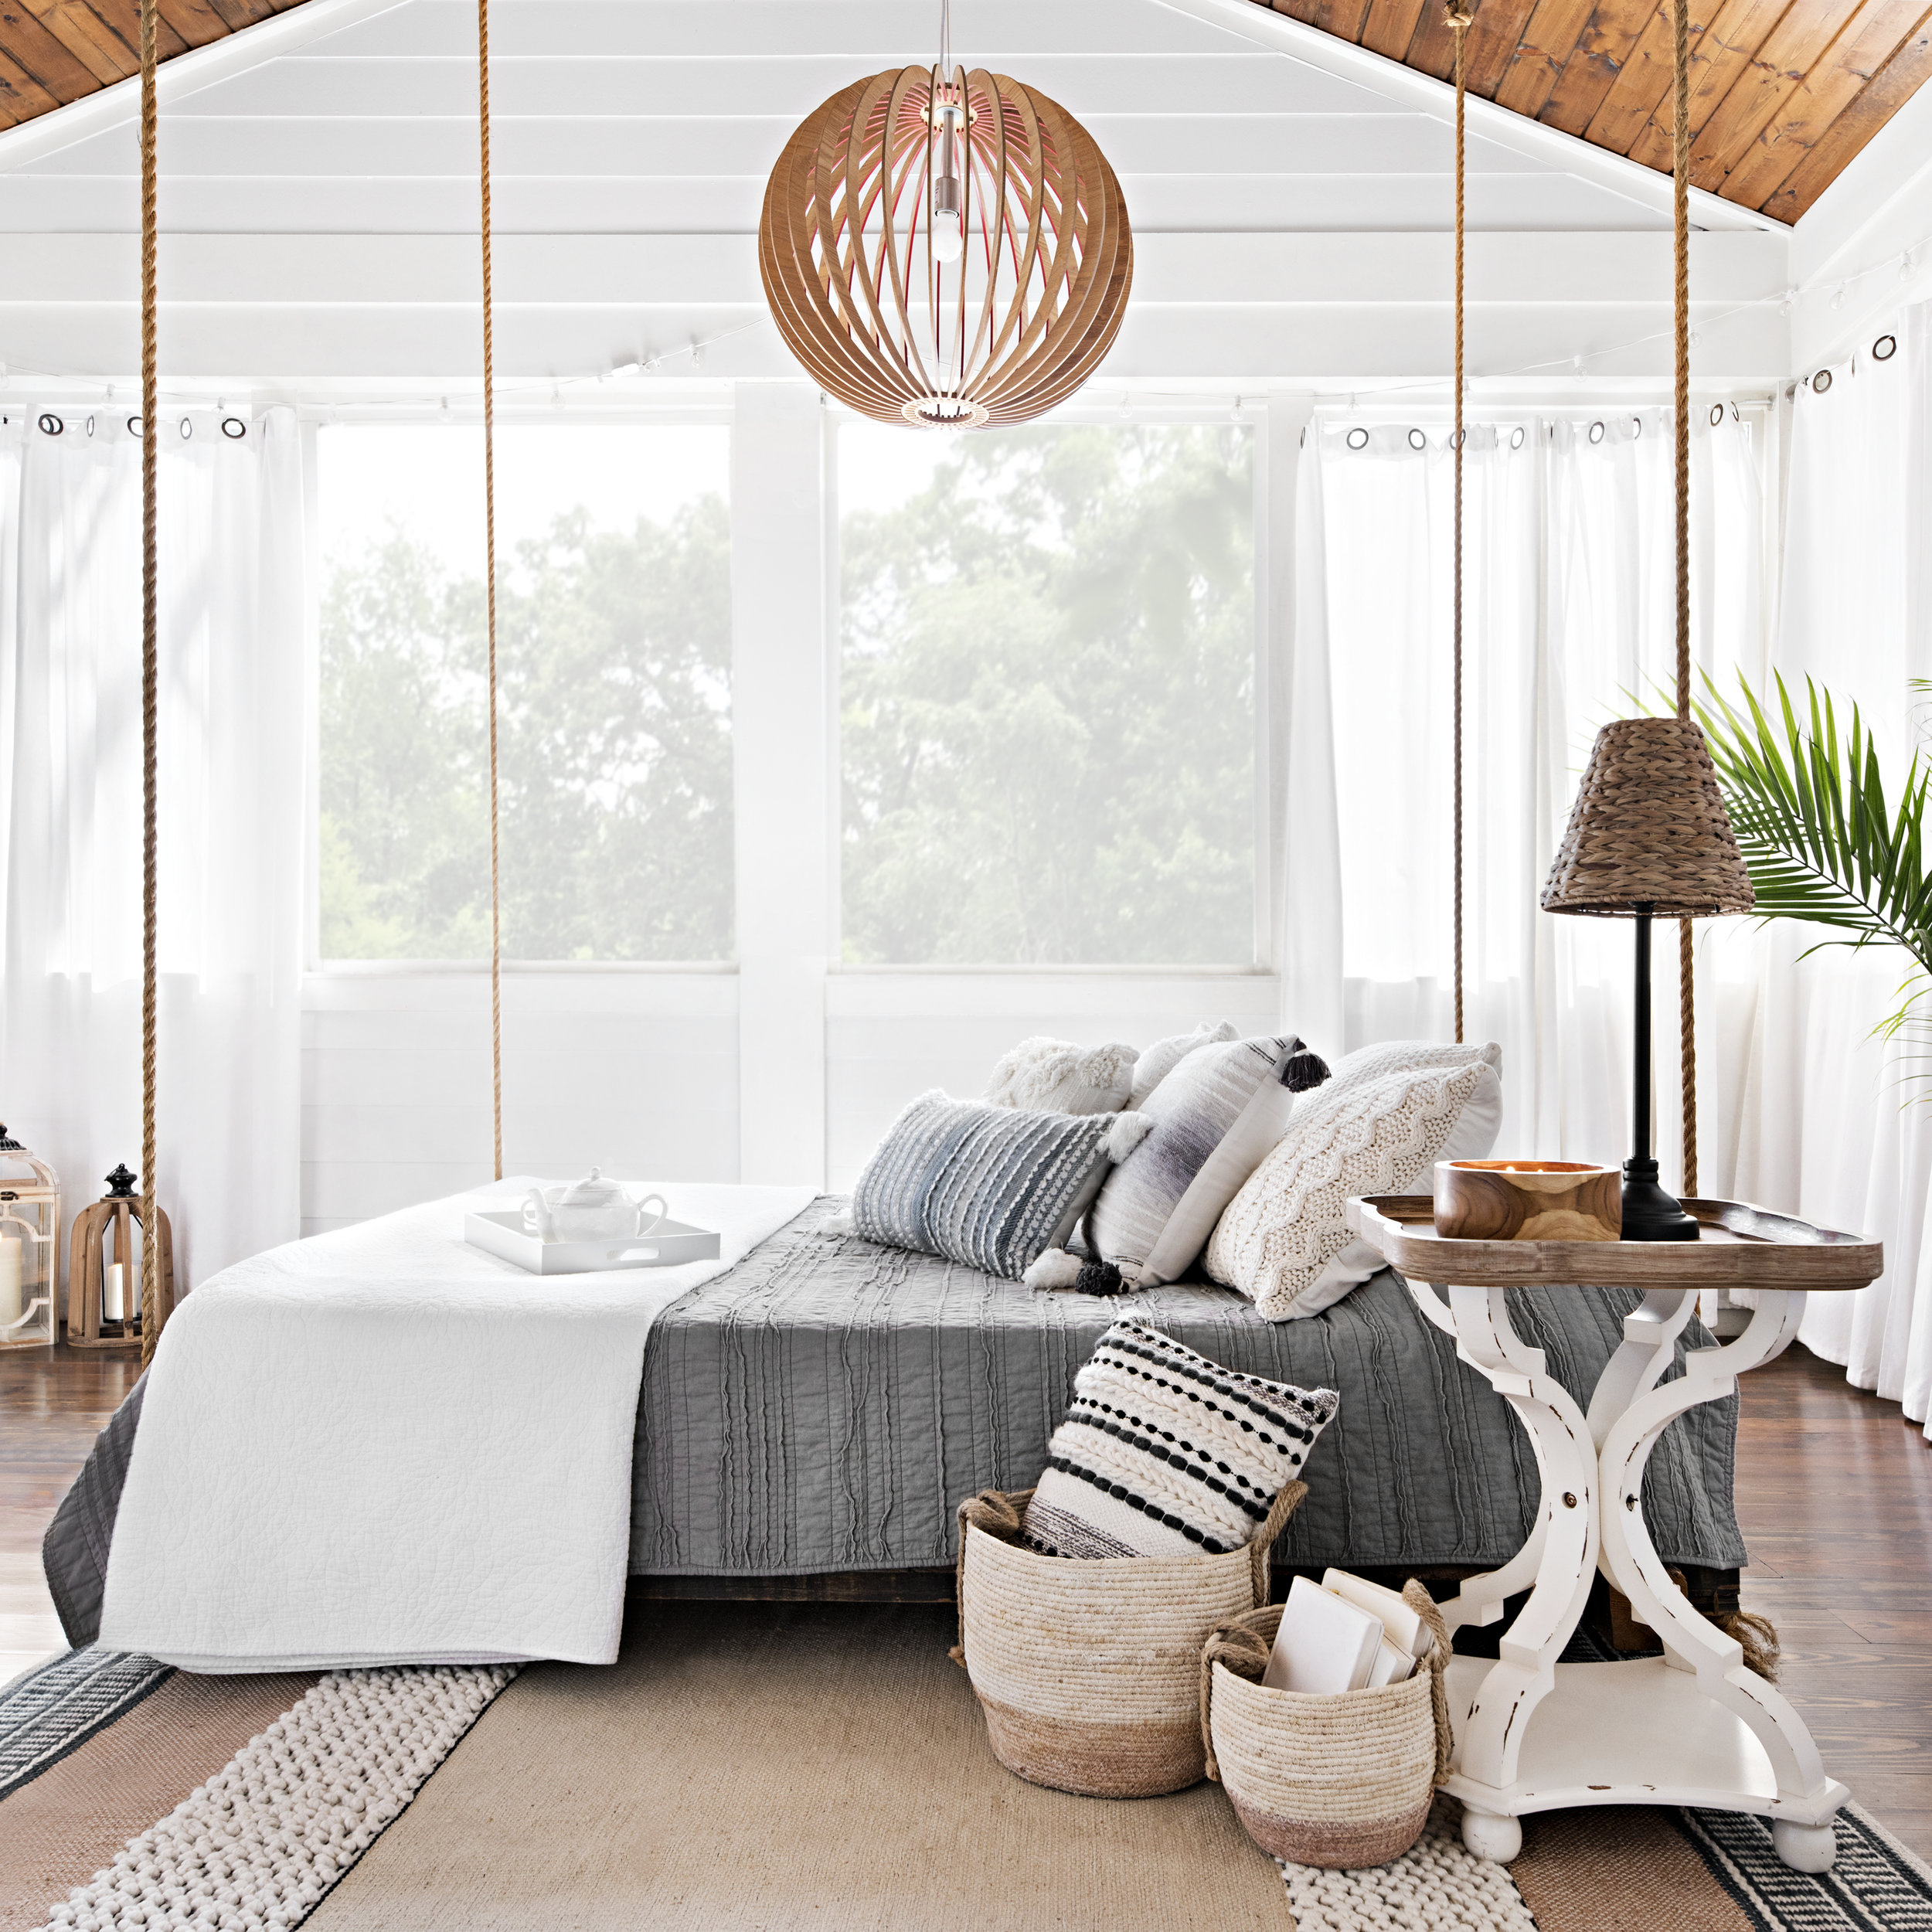 Kirkland's - 5 Trends For Getting A Head Start On Summer Decorating